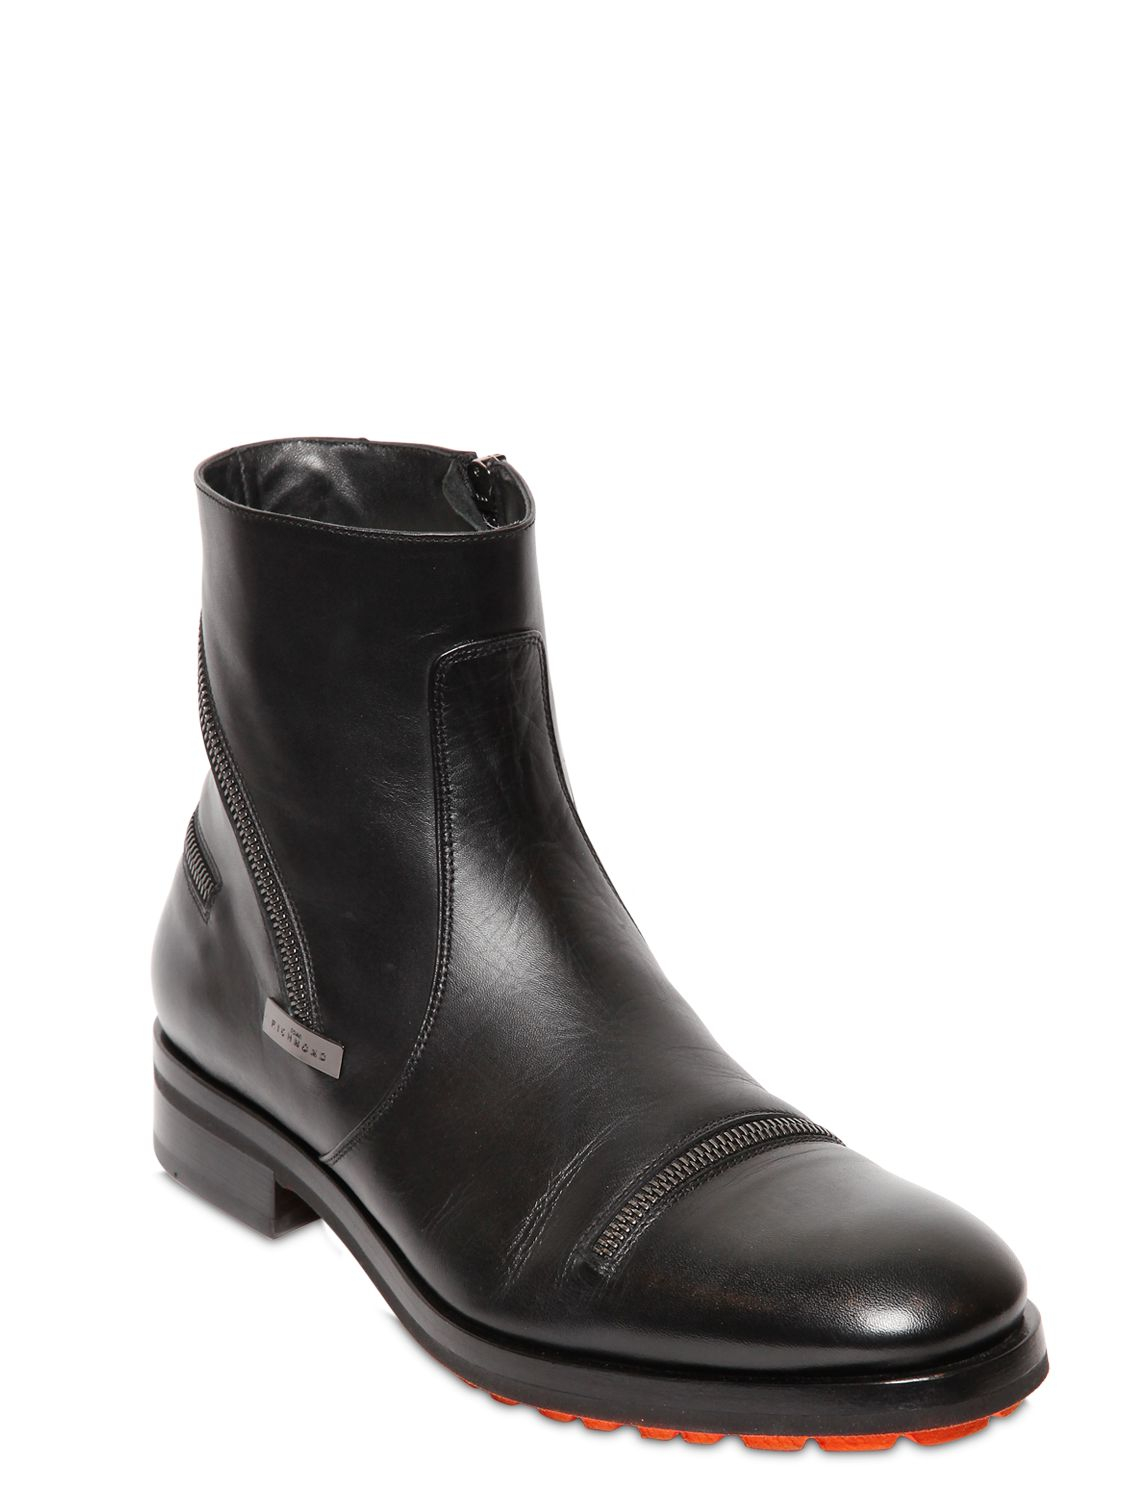 Marc Jacobs Boots 684220 smooth leather Decorative buckle Metallic eDSW8Z